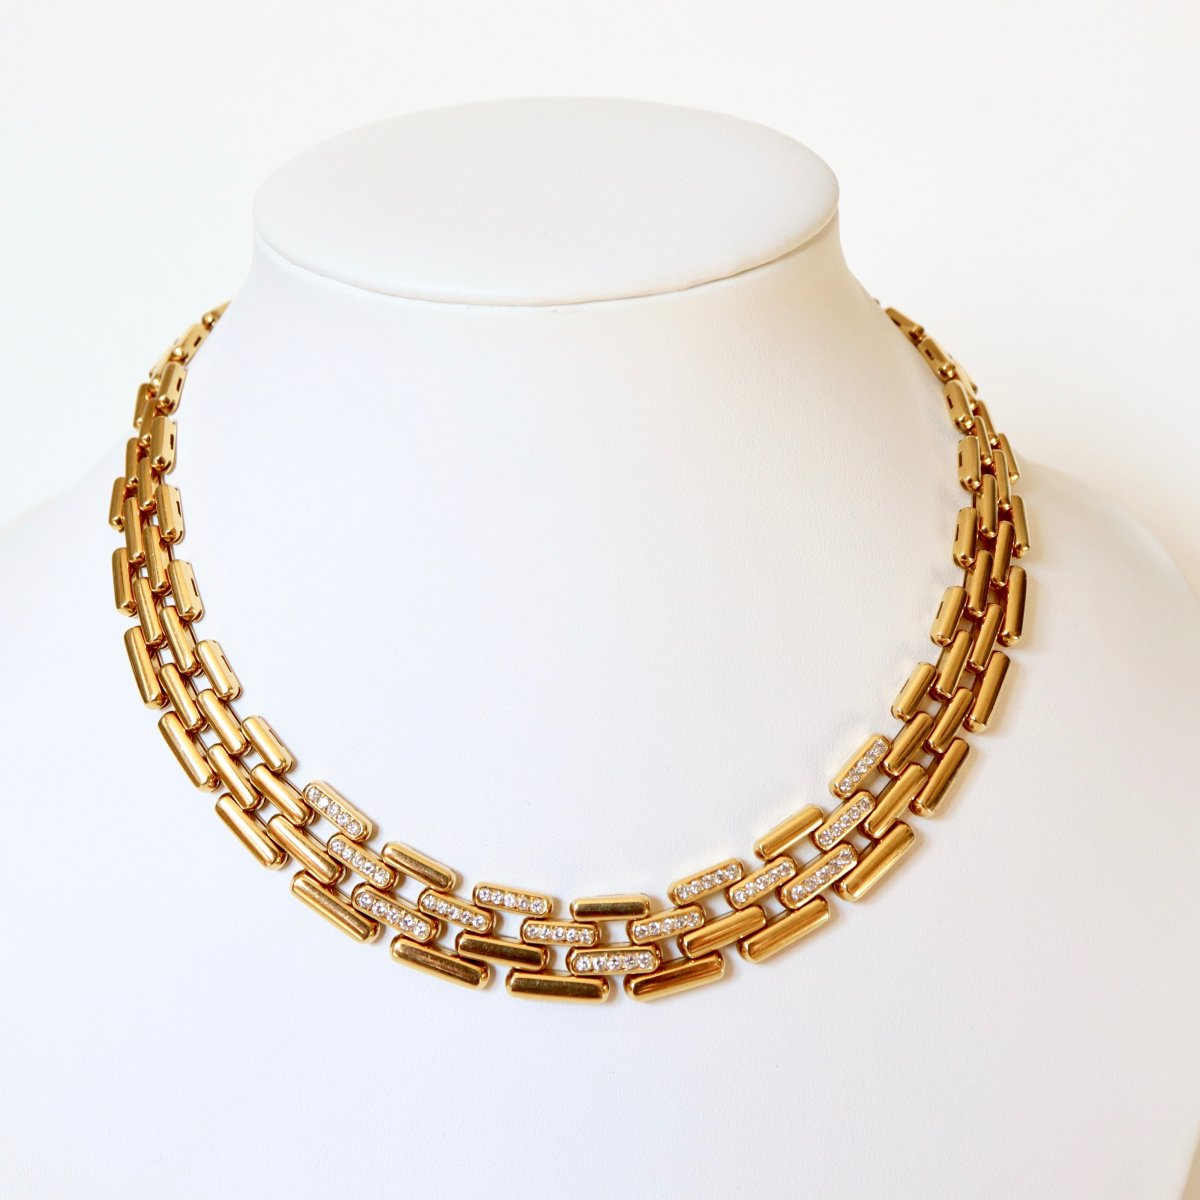 Fred Articulated Mesh Tank Necklace (panther) In 18k Yellow Gold And Diamonds